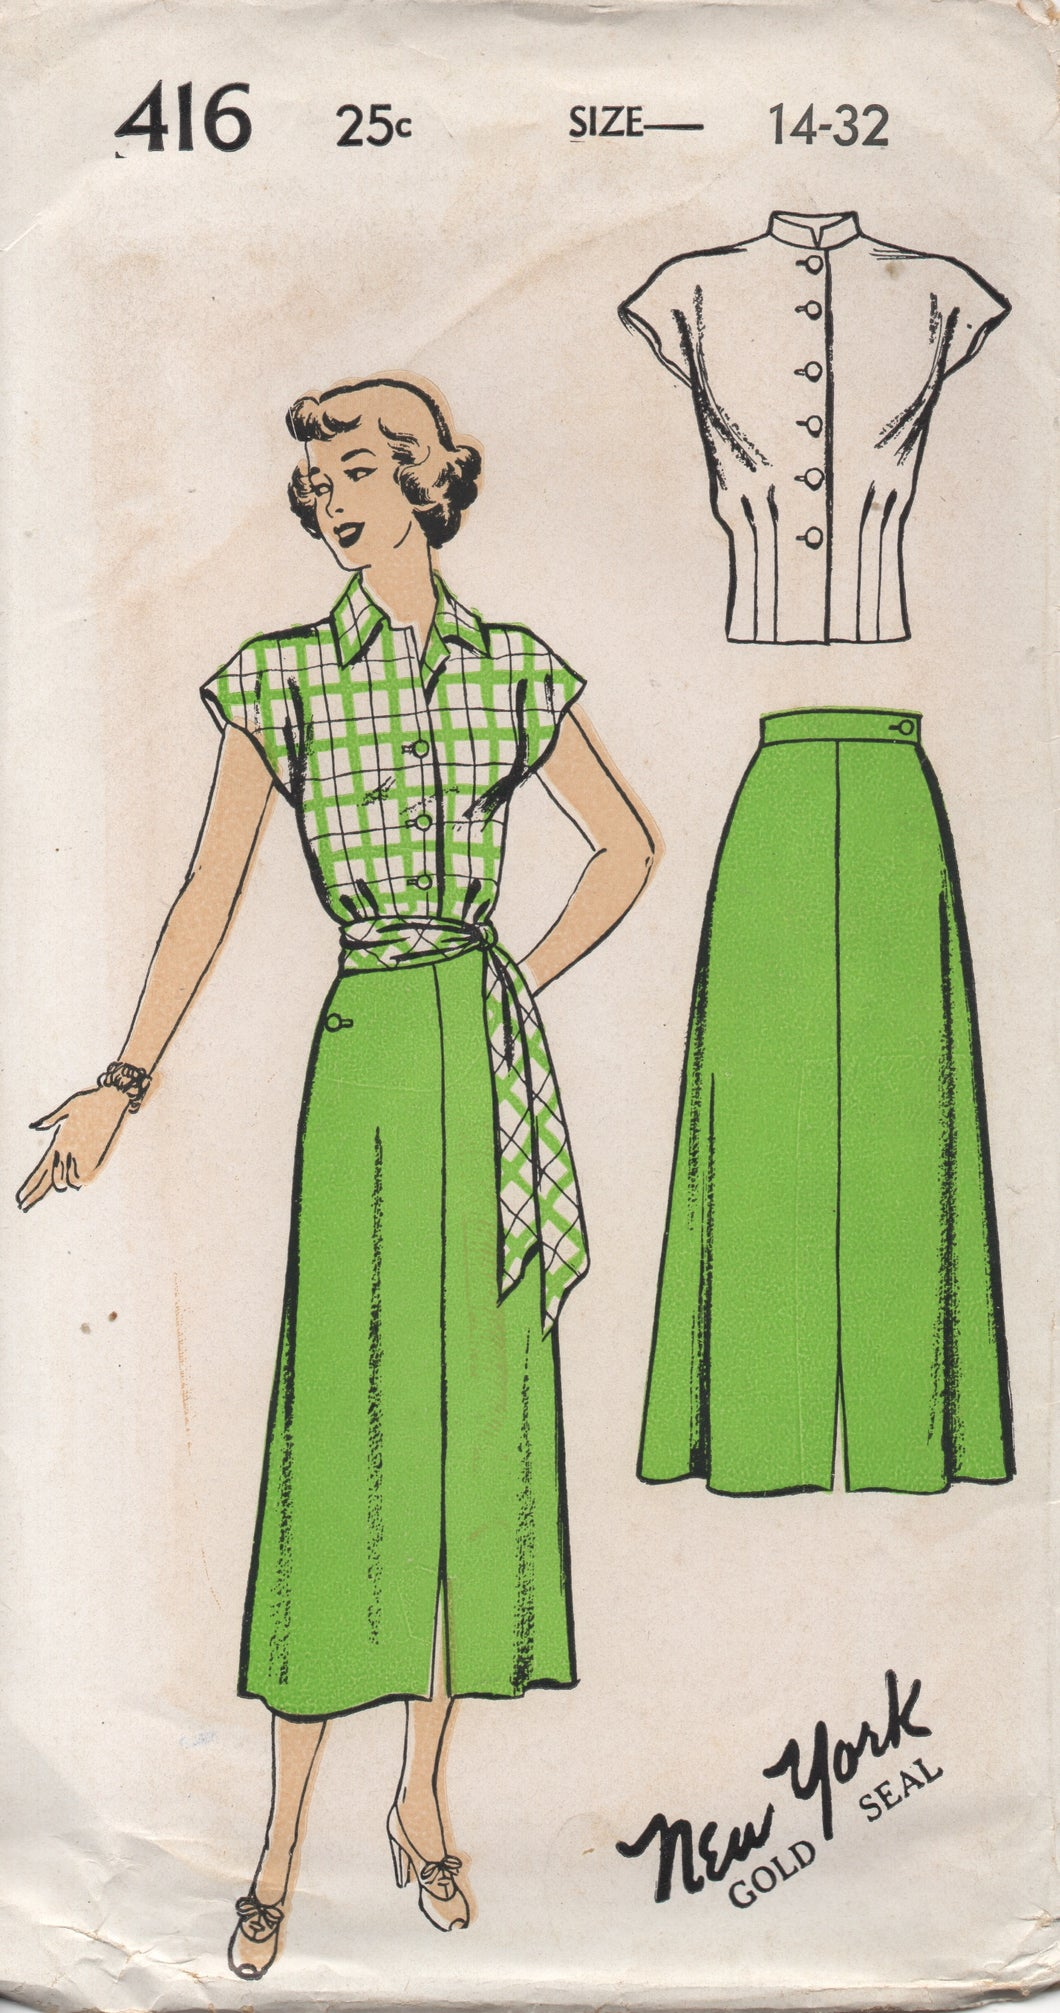 1940's New York Blouse with Drop Shoulders, Tie belt and A line skirt - Bust 32